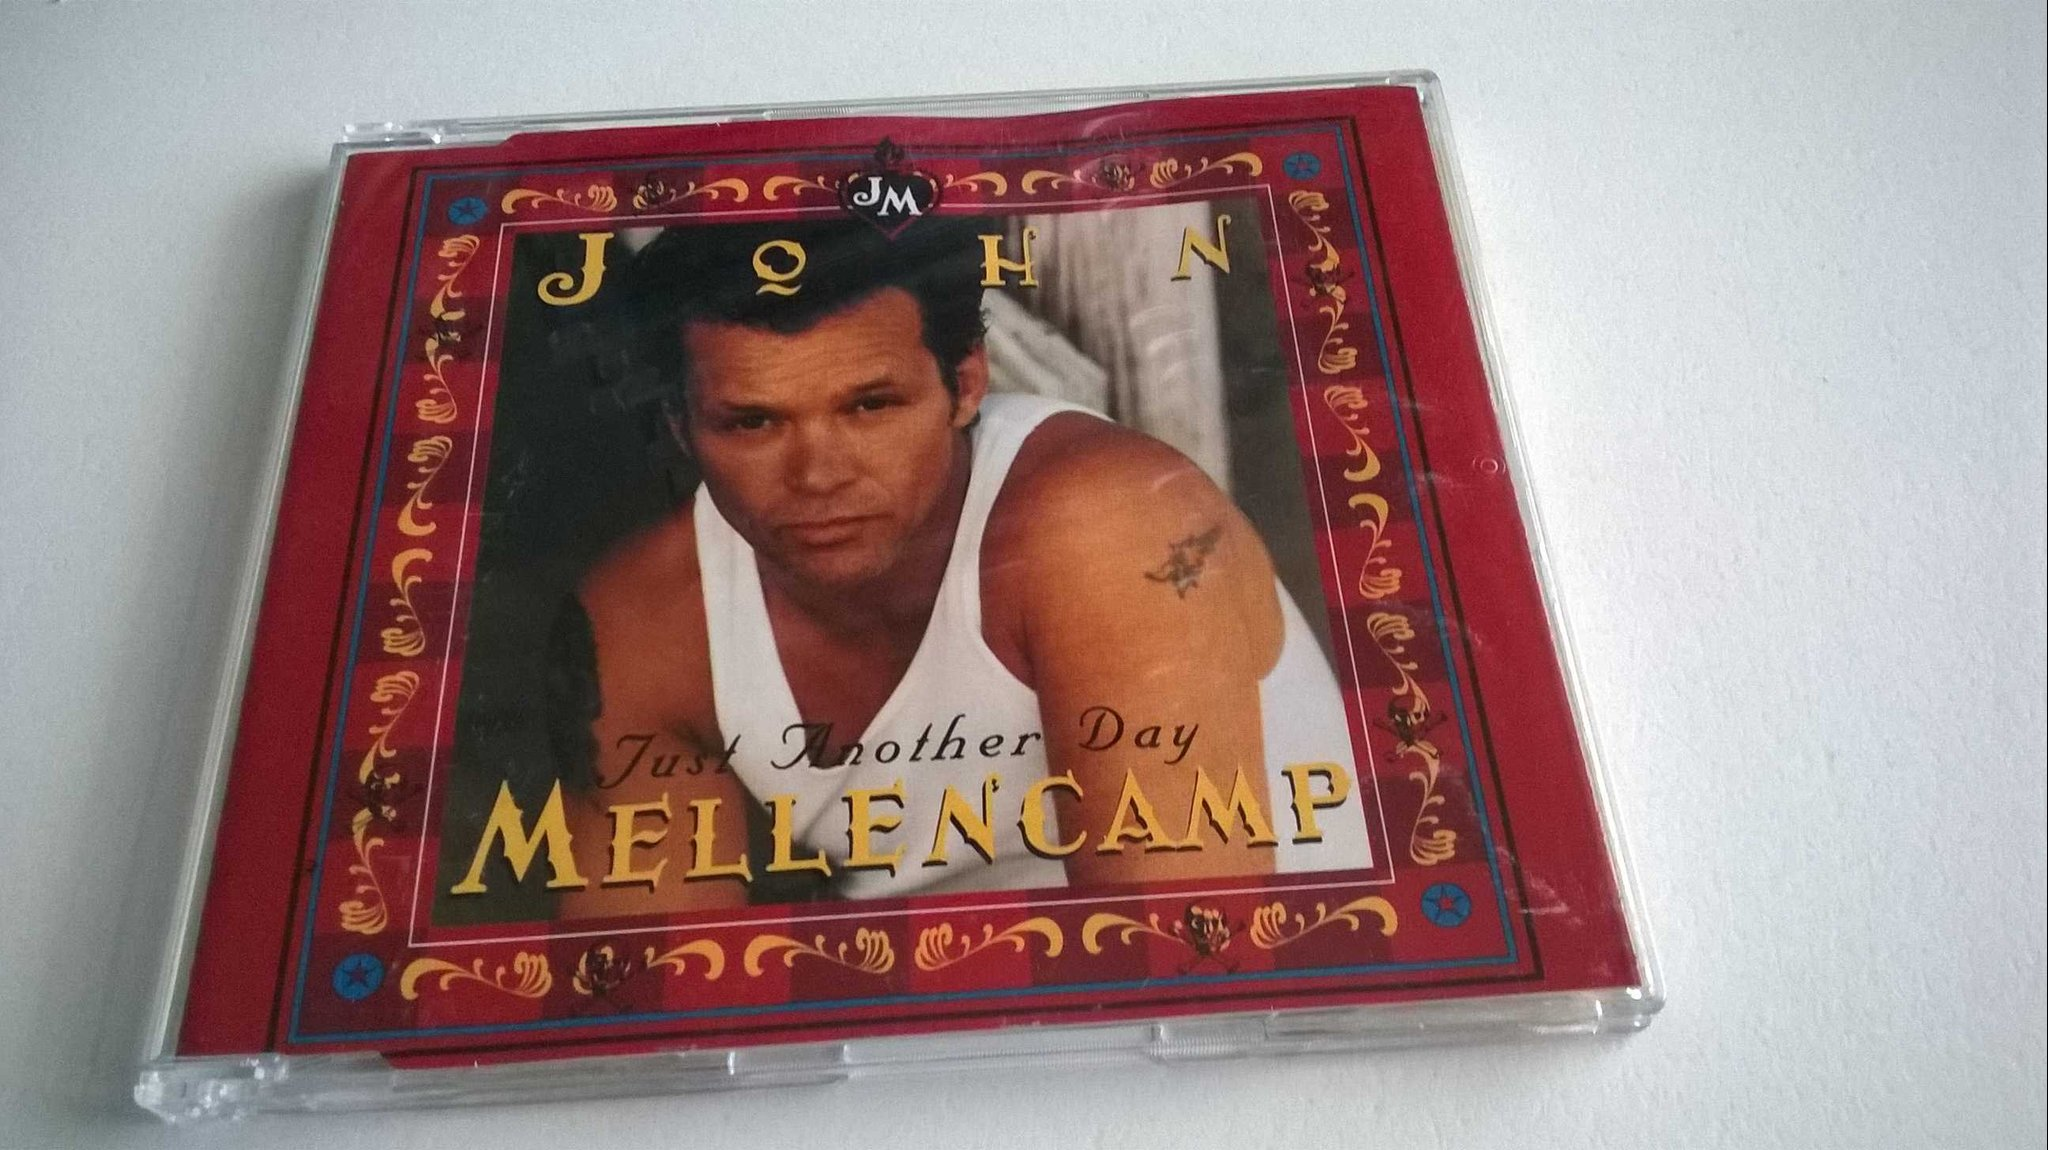 John Mellencamp - Just Another Day, CD